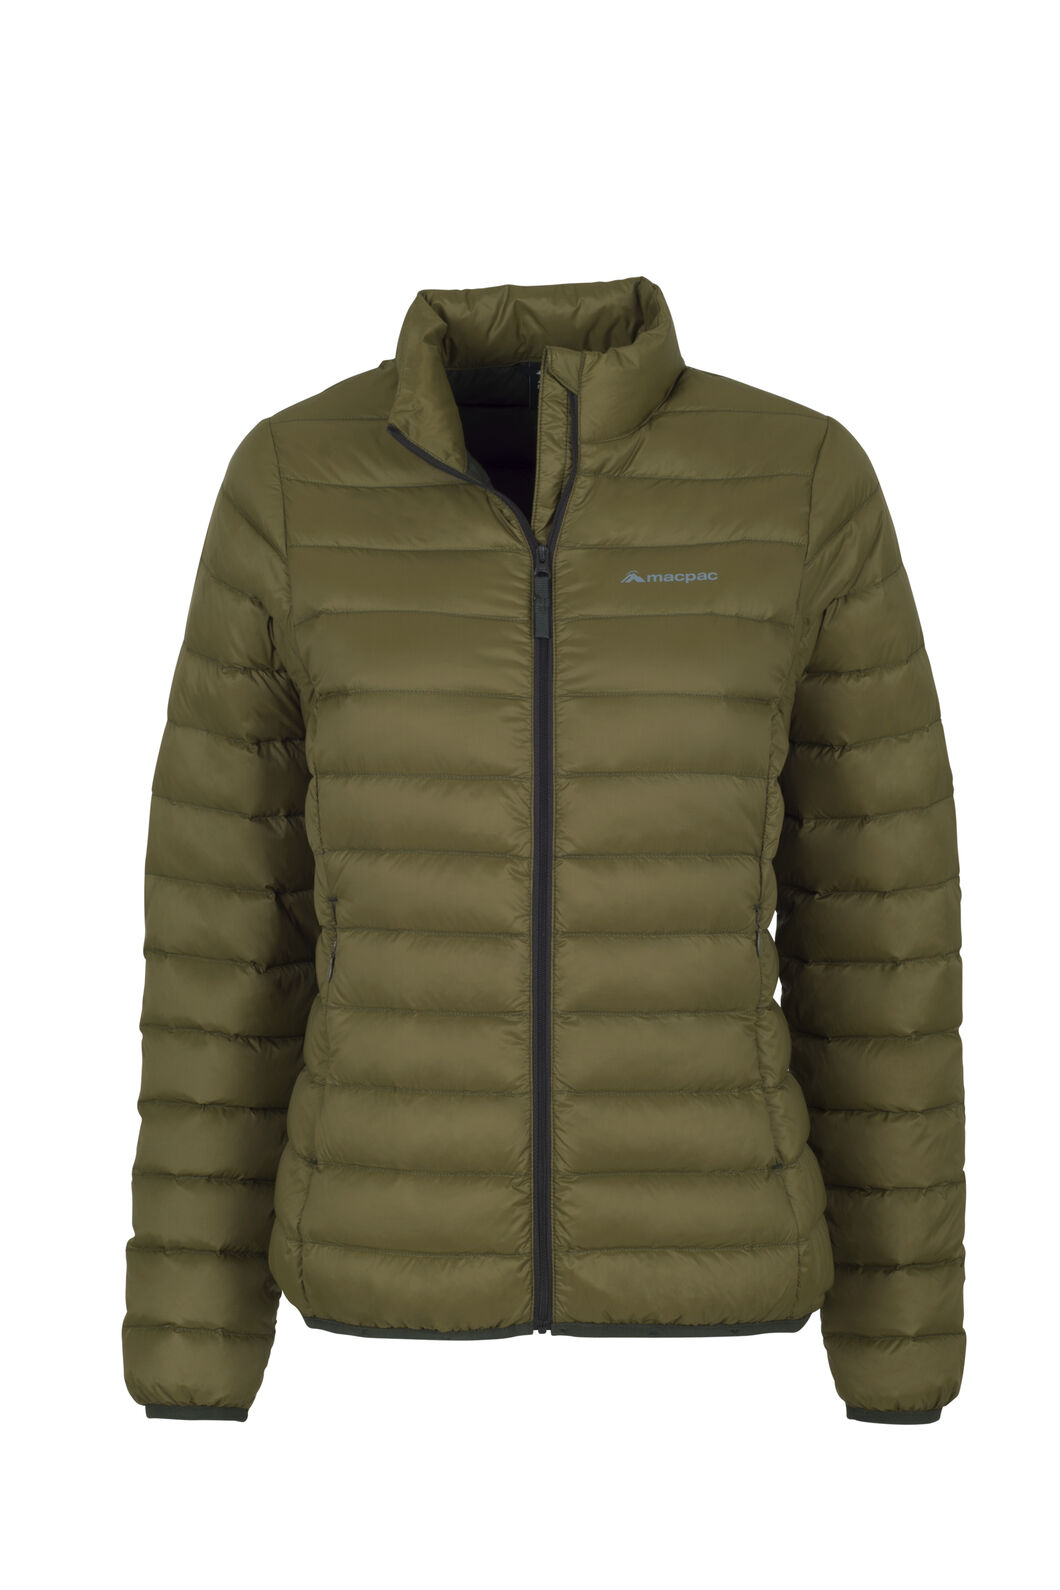 Macpac Uber Light Down Jacket — Women's, Military Olive, hi-res